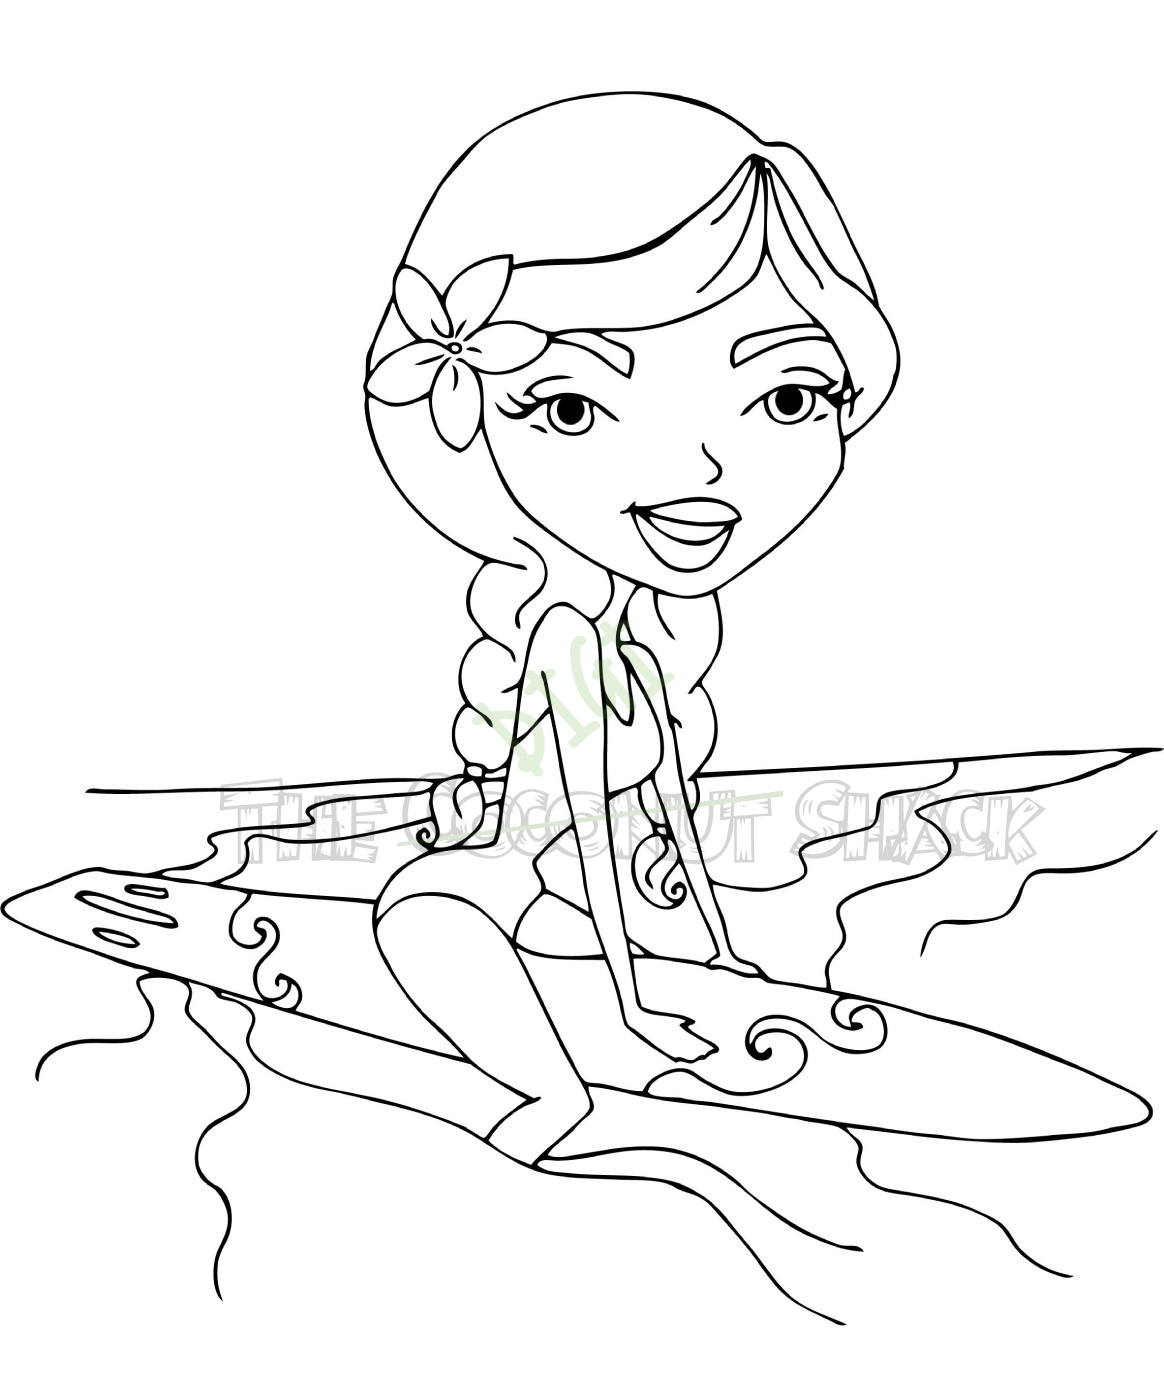 This is a picture of Delicate Surfing Coloring Pages